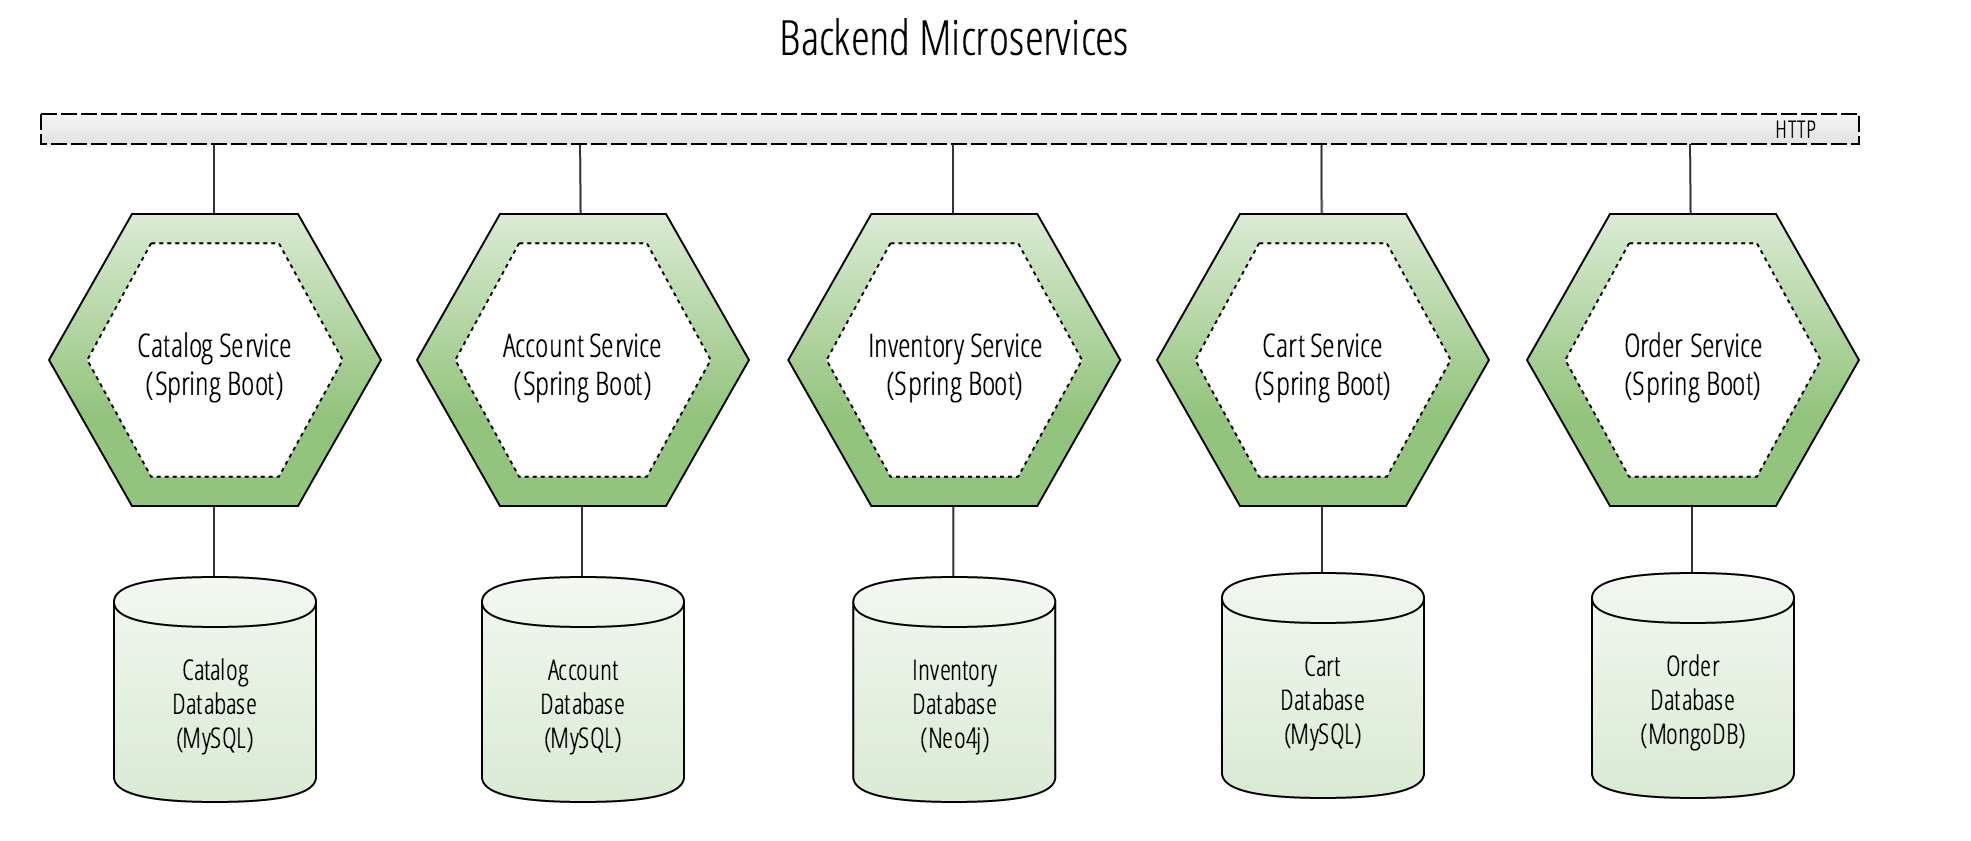 Event Sourcing in Microservices Using Spring Cloud and Reactor